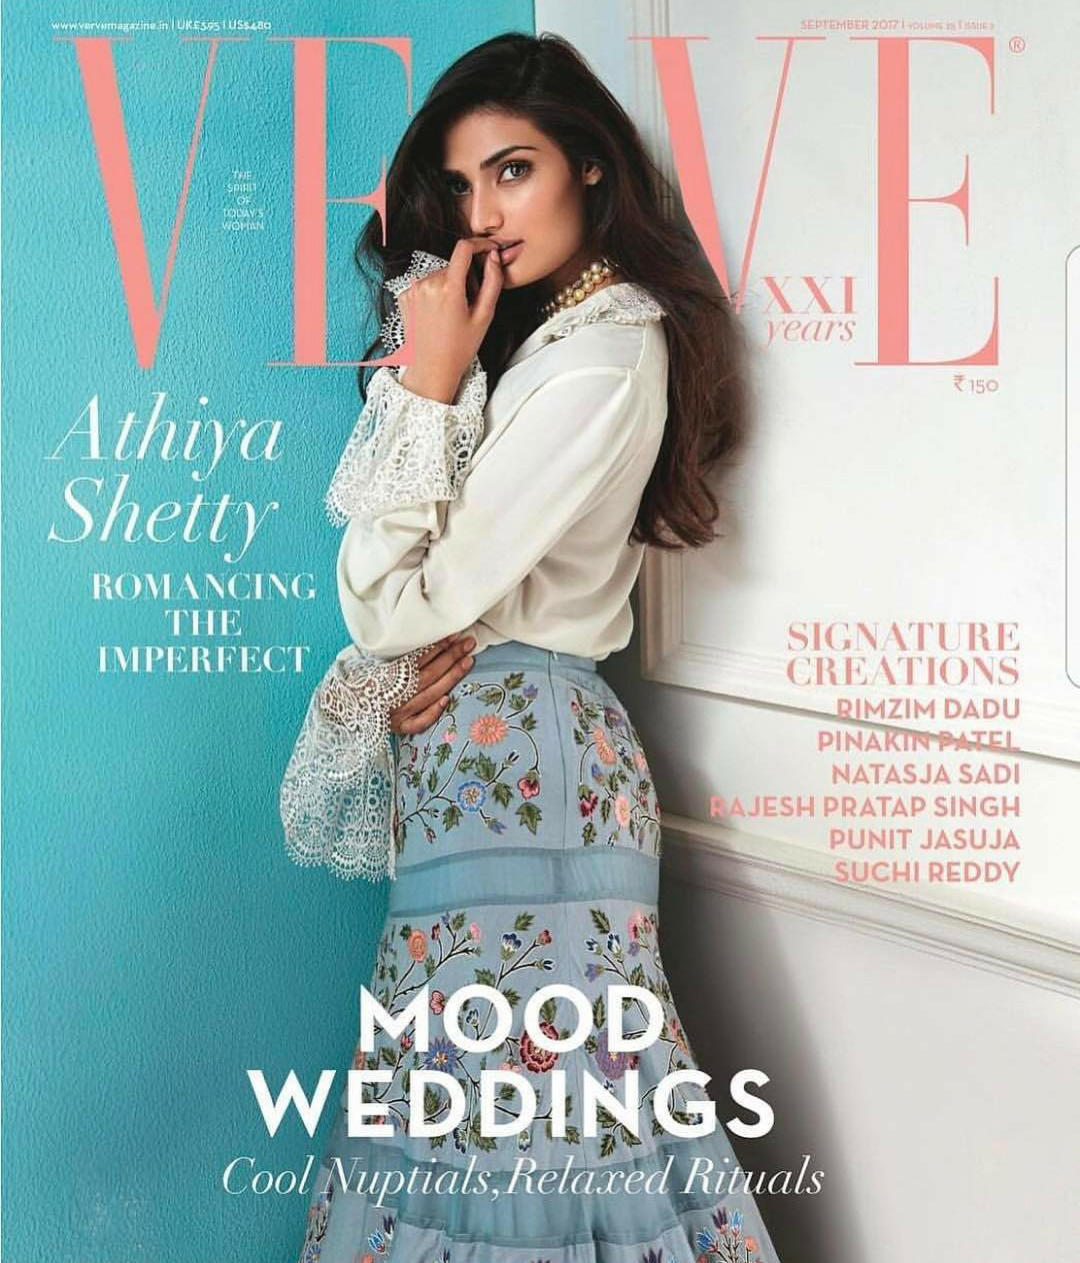 Athiya Shetty On Verve September 2017 Cover